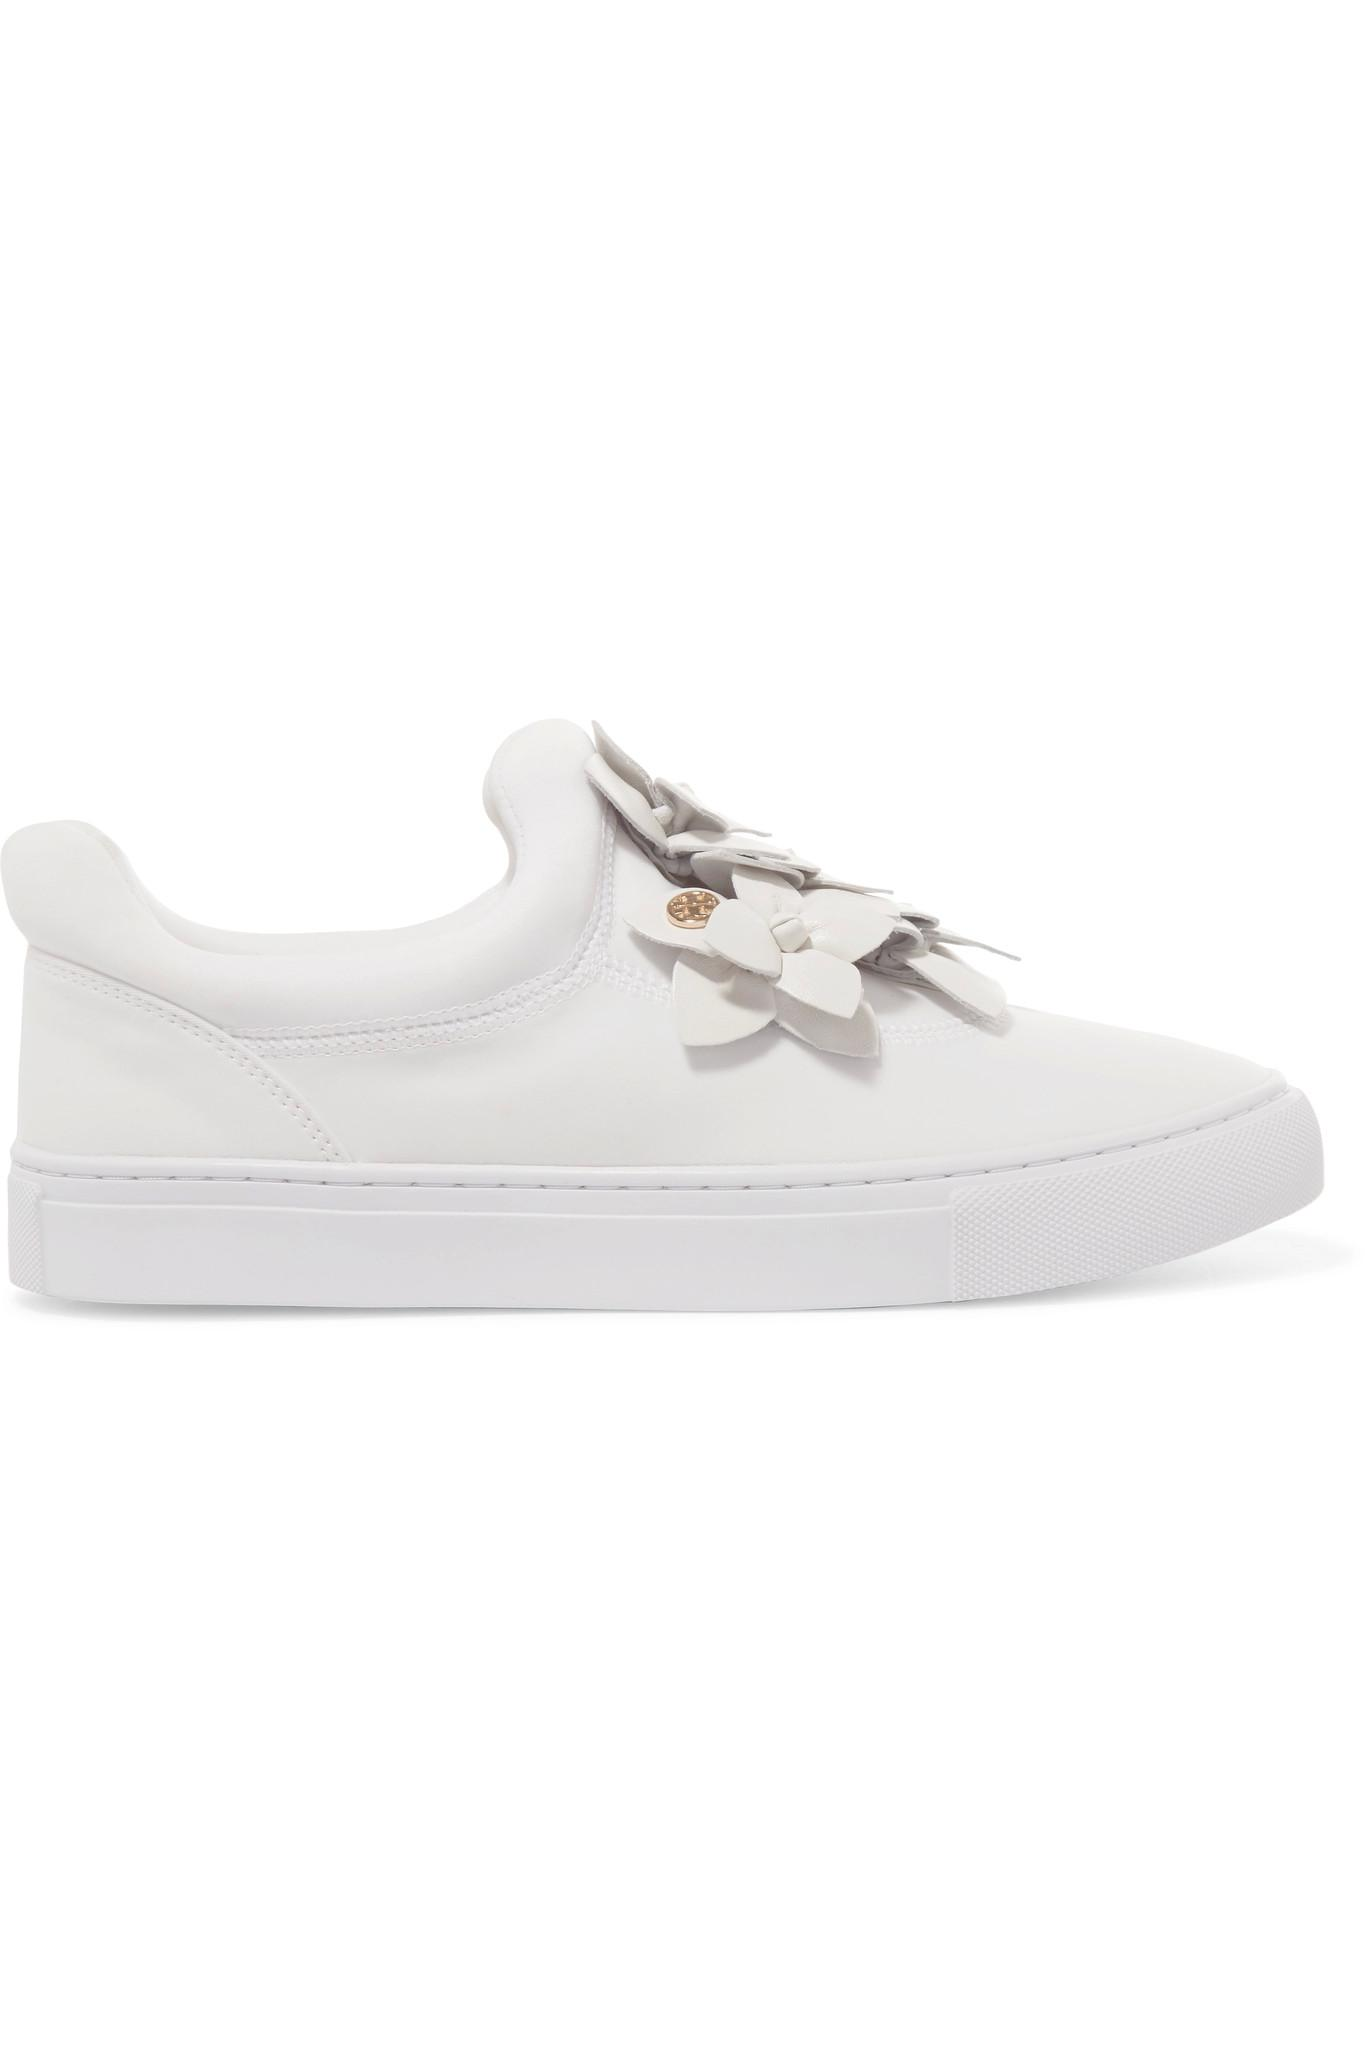 Tory Burch Floral Appliqué Slip-On Sneakers really cheap price TQWMFf6rq